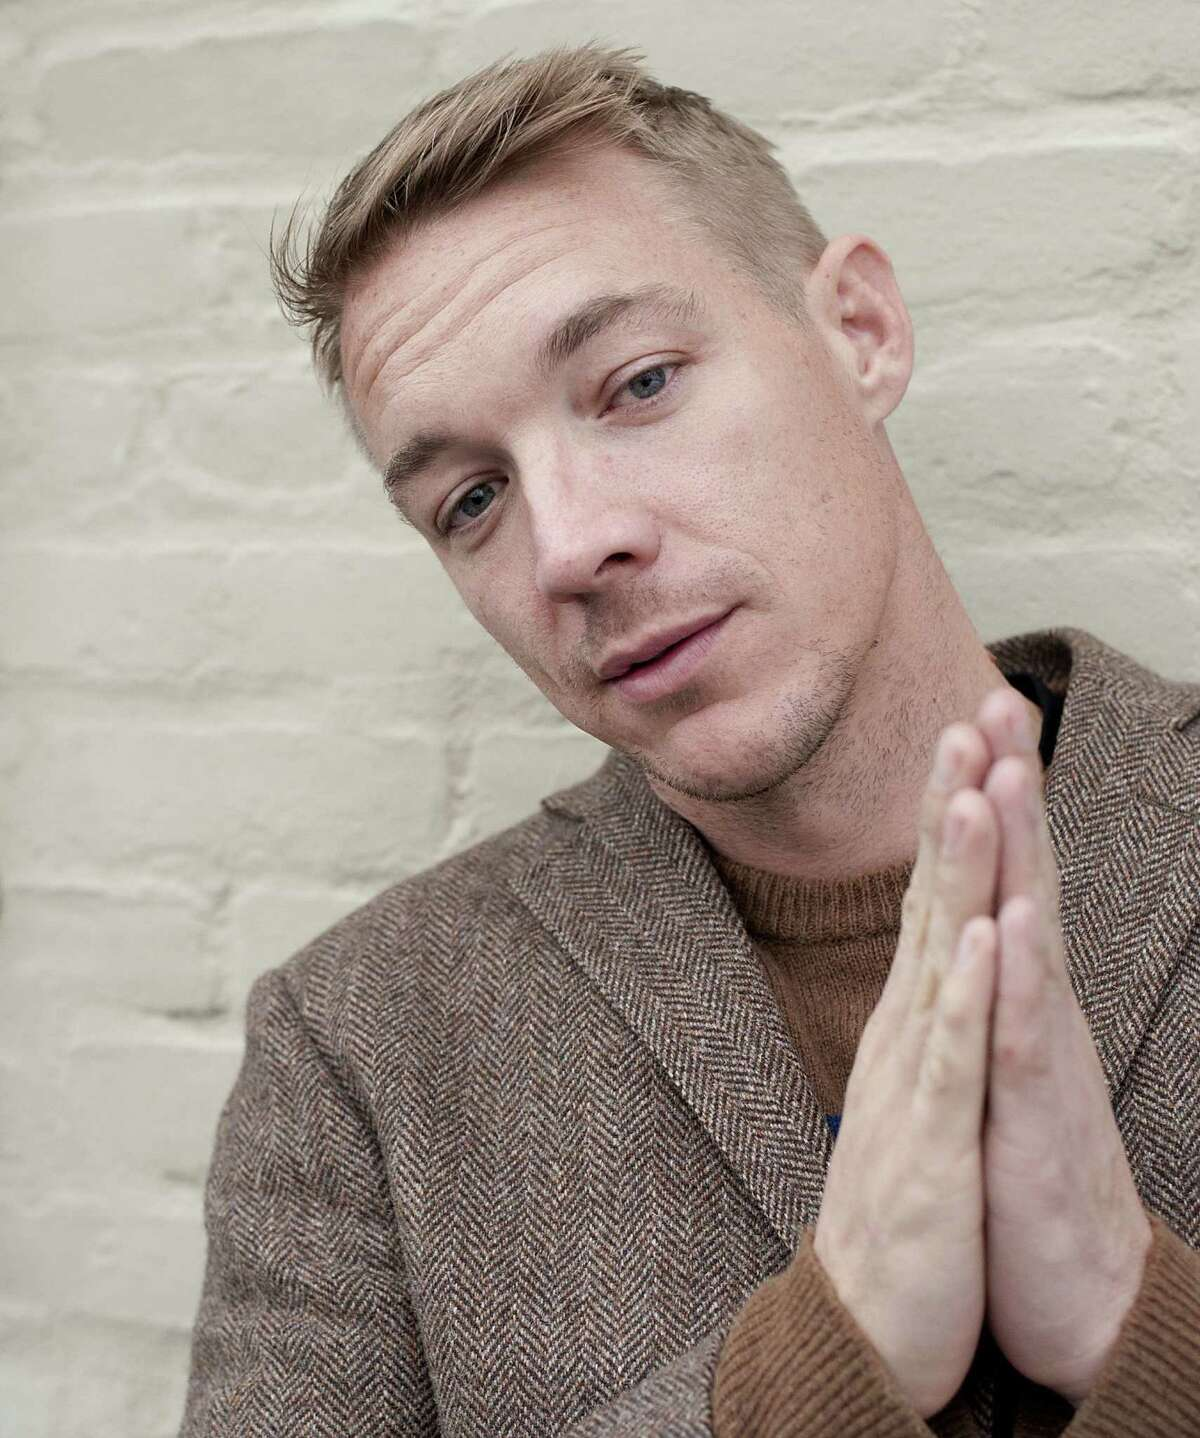 Major Lazer: Diplo's electronic dancehall DJ alter-ego excursion is best experienced on the dance floor. Check out tracks such as the reggaeton-infused